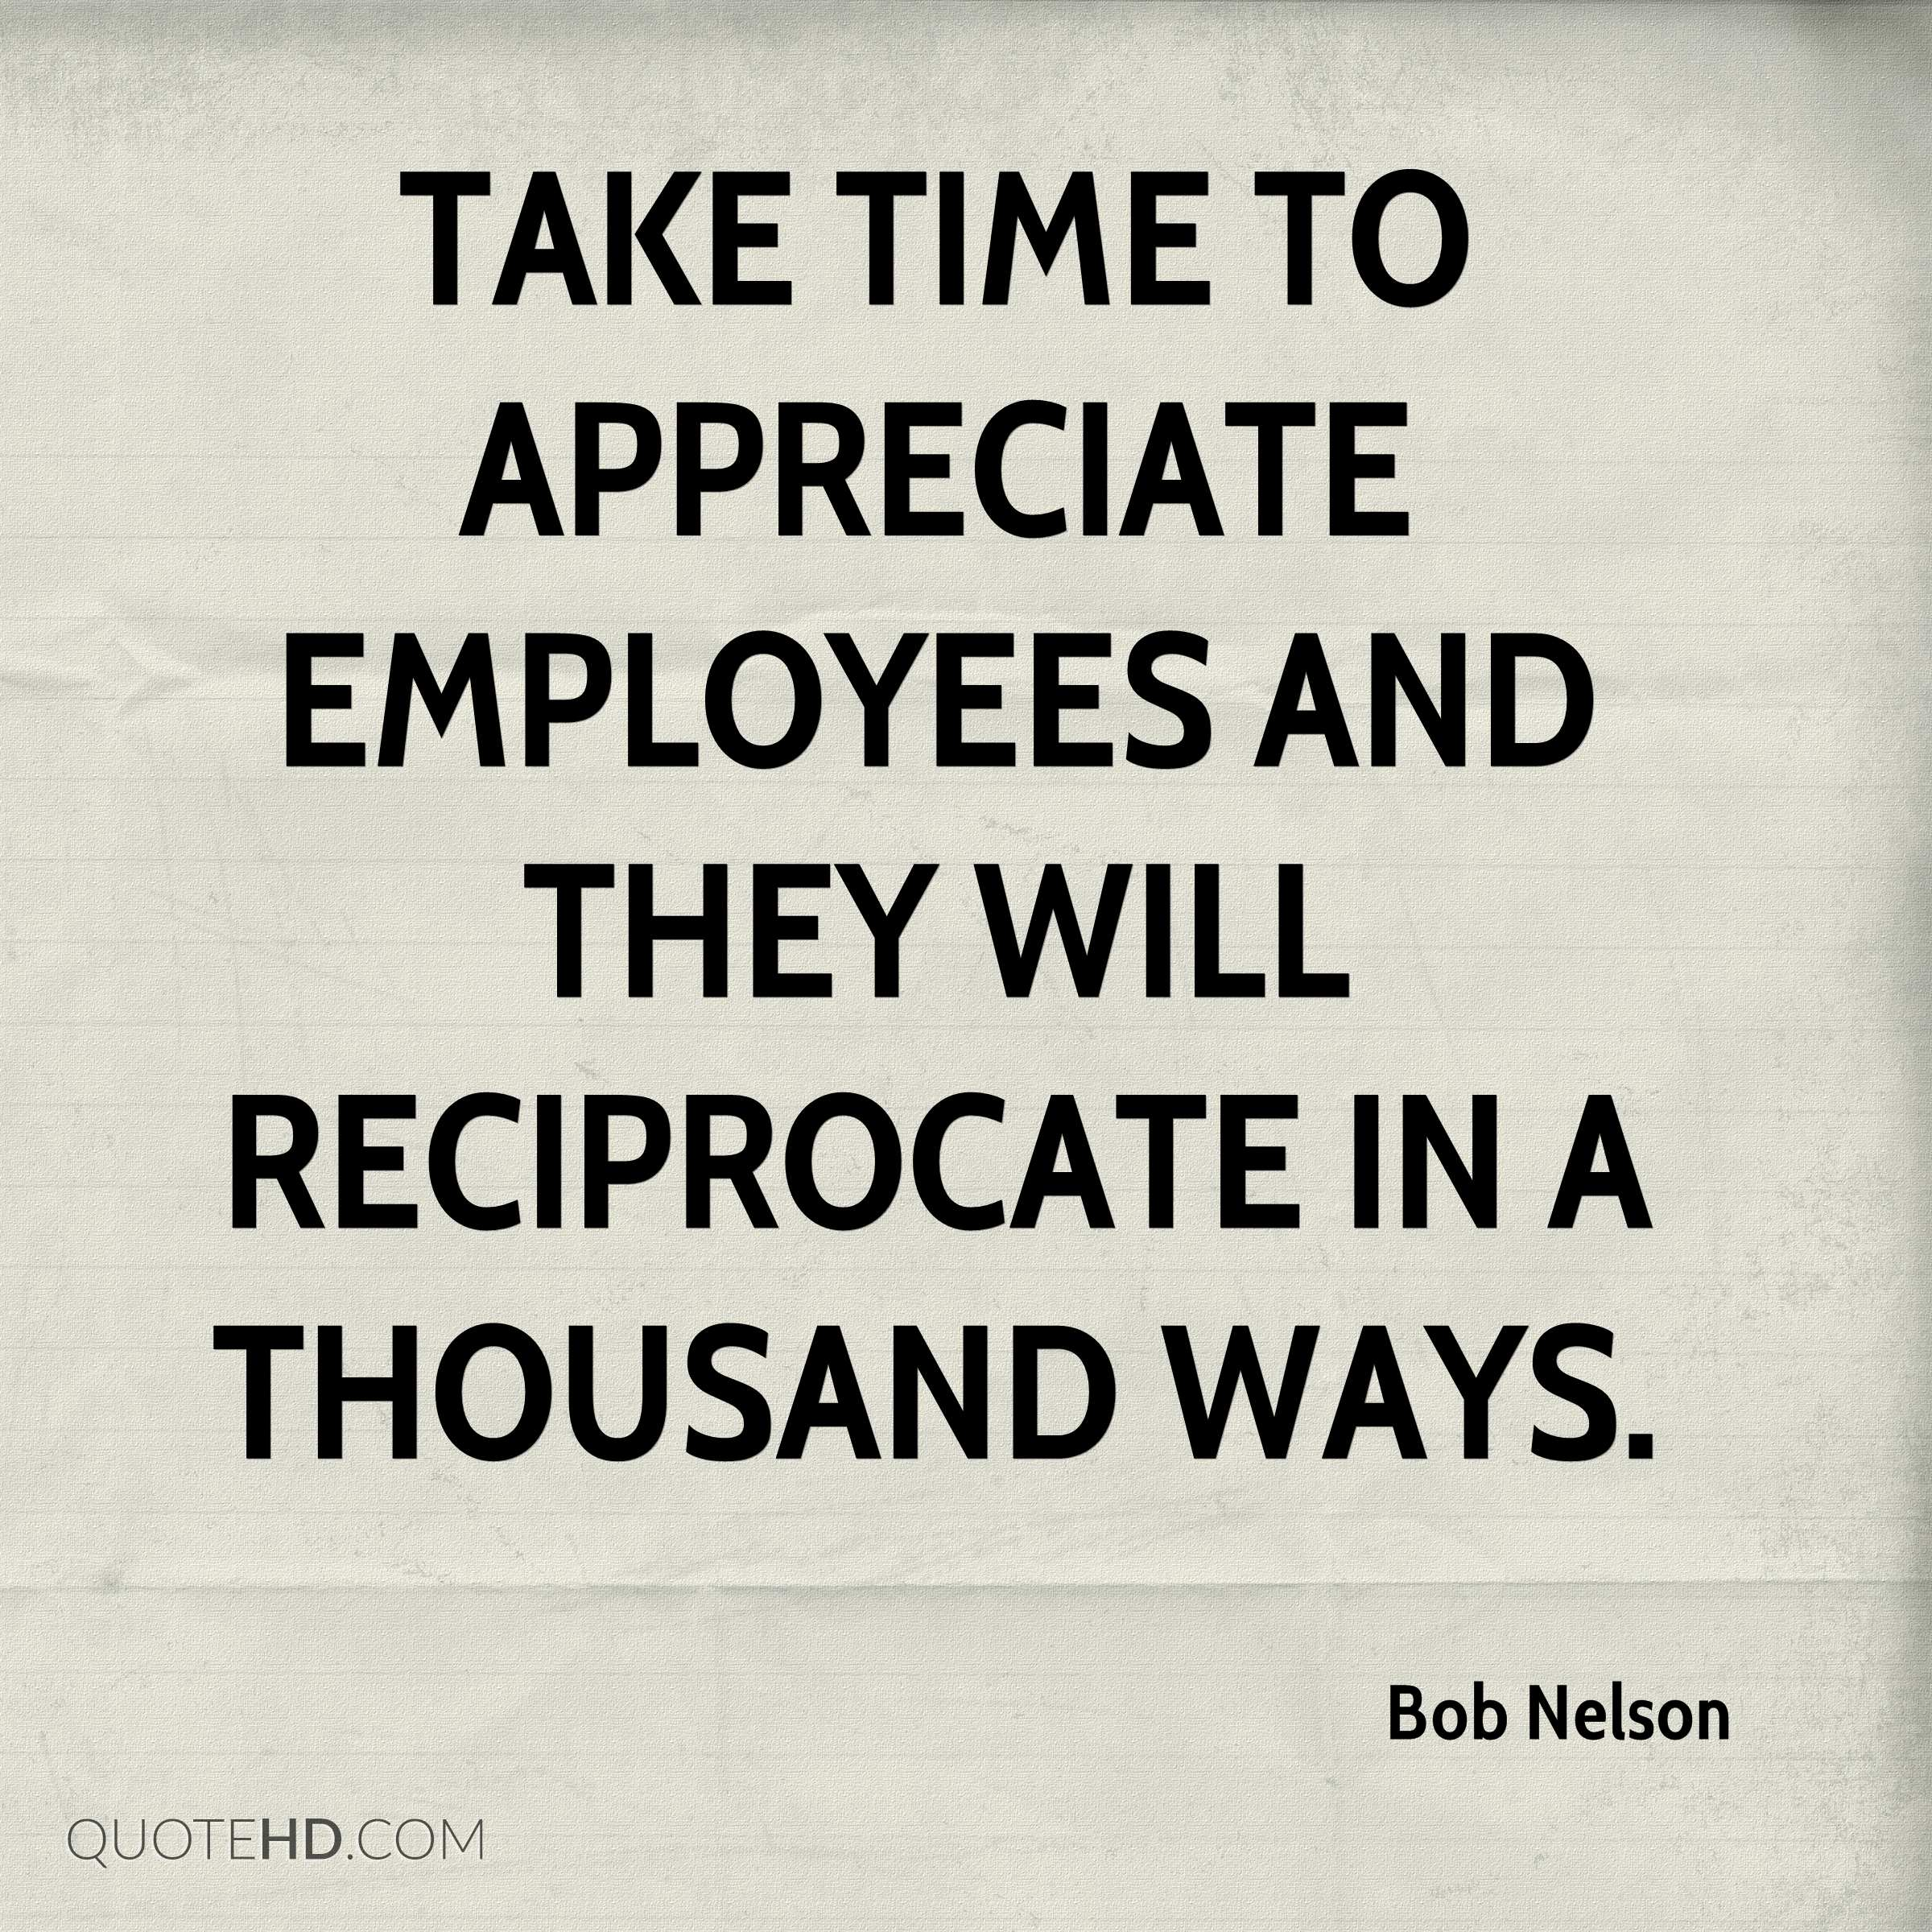 Take time to appreciate employees and they will reciprocate in a thousand ways.